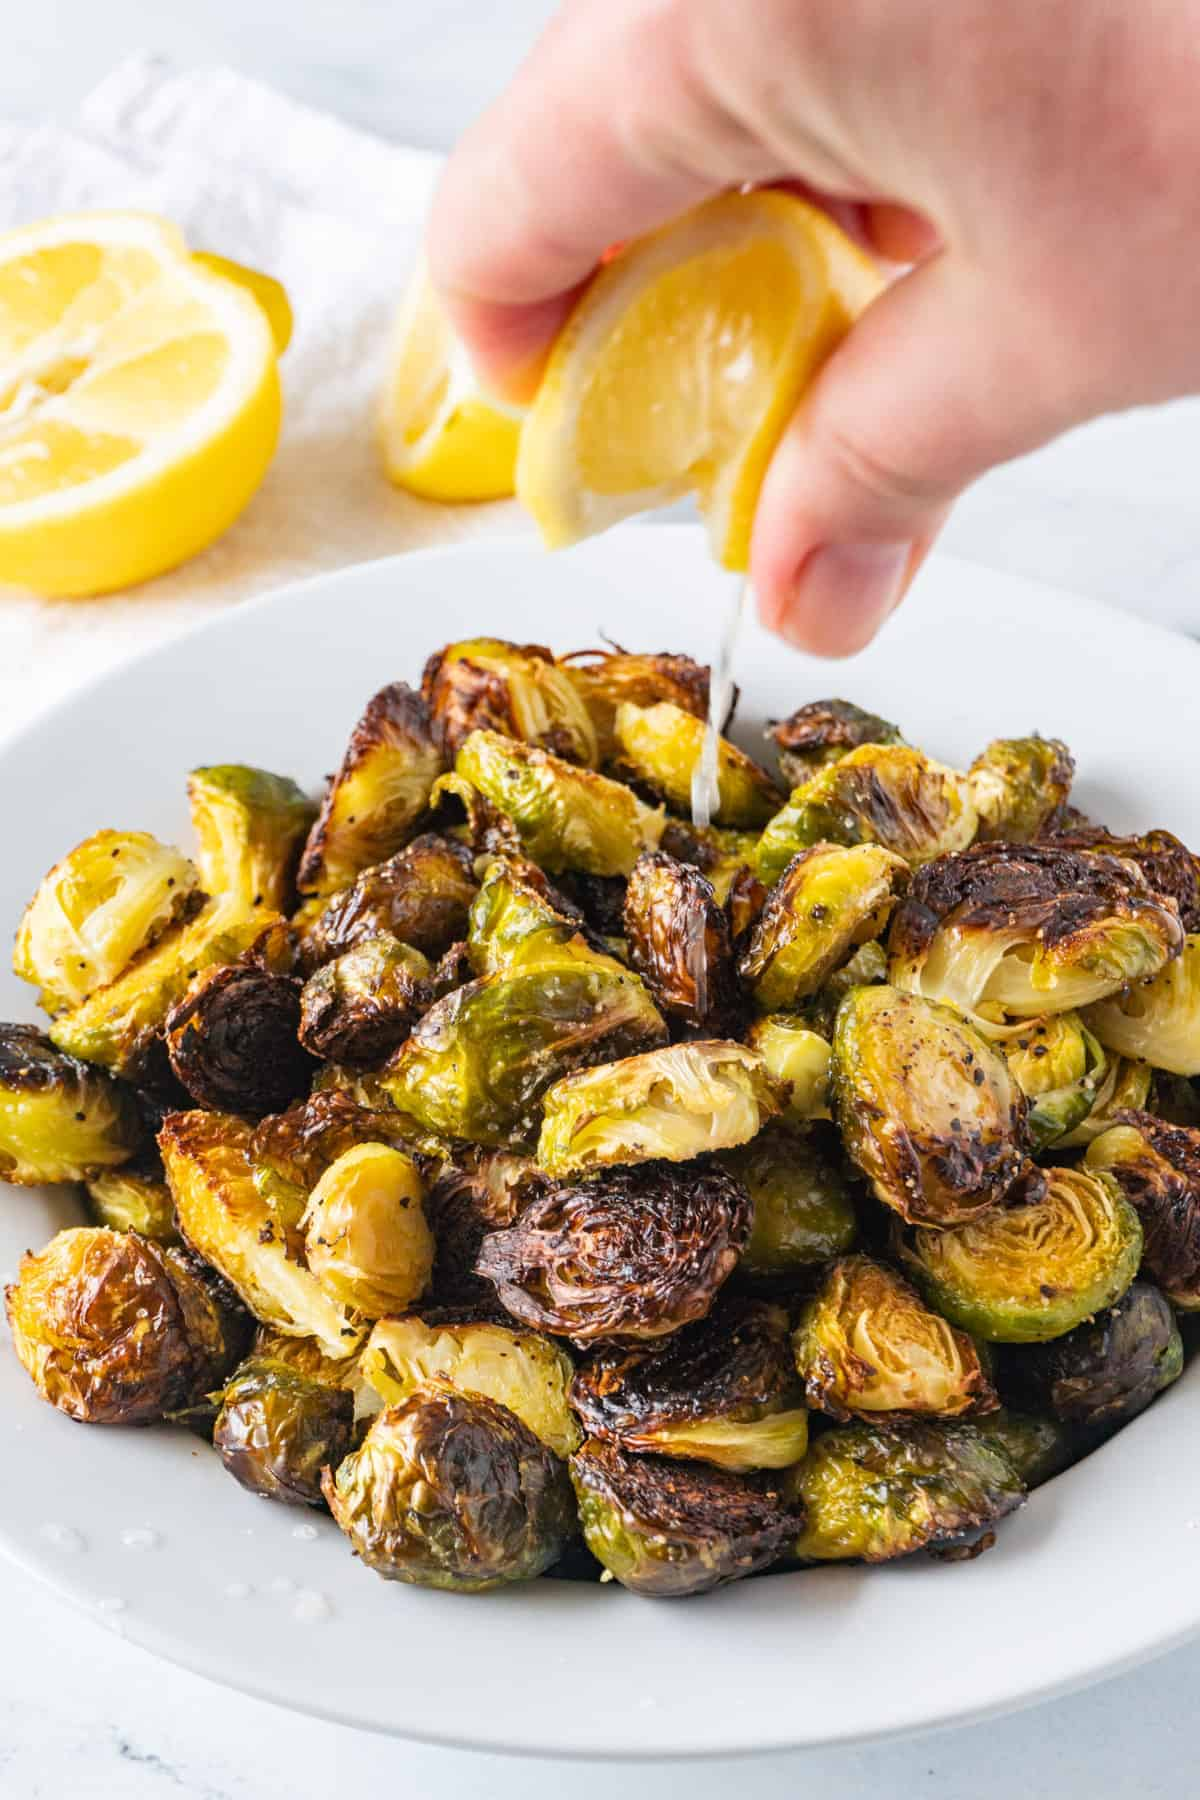 Oven Roasted Brussel Sprouts with lime juice being squeezed onto them